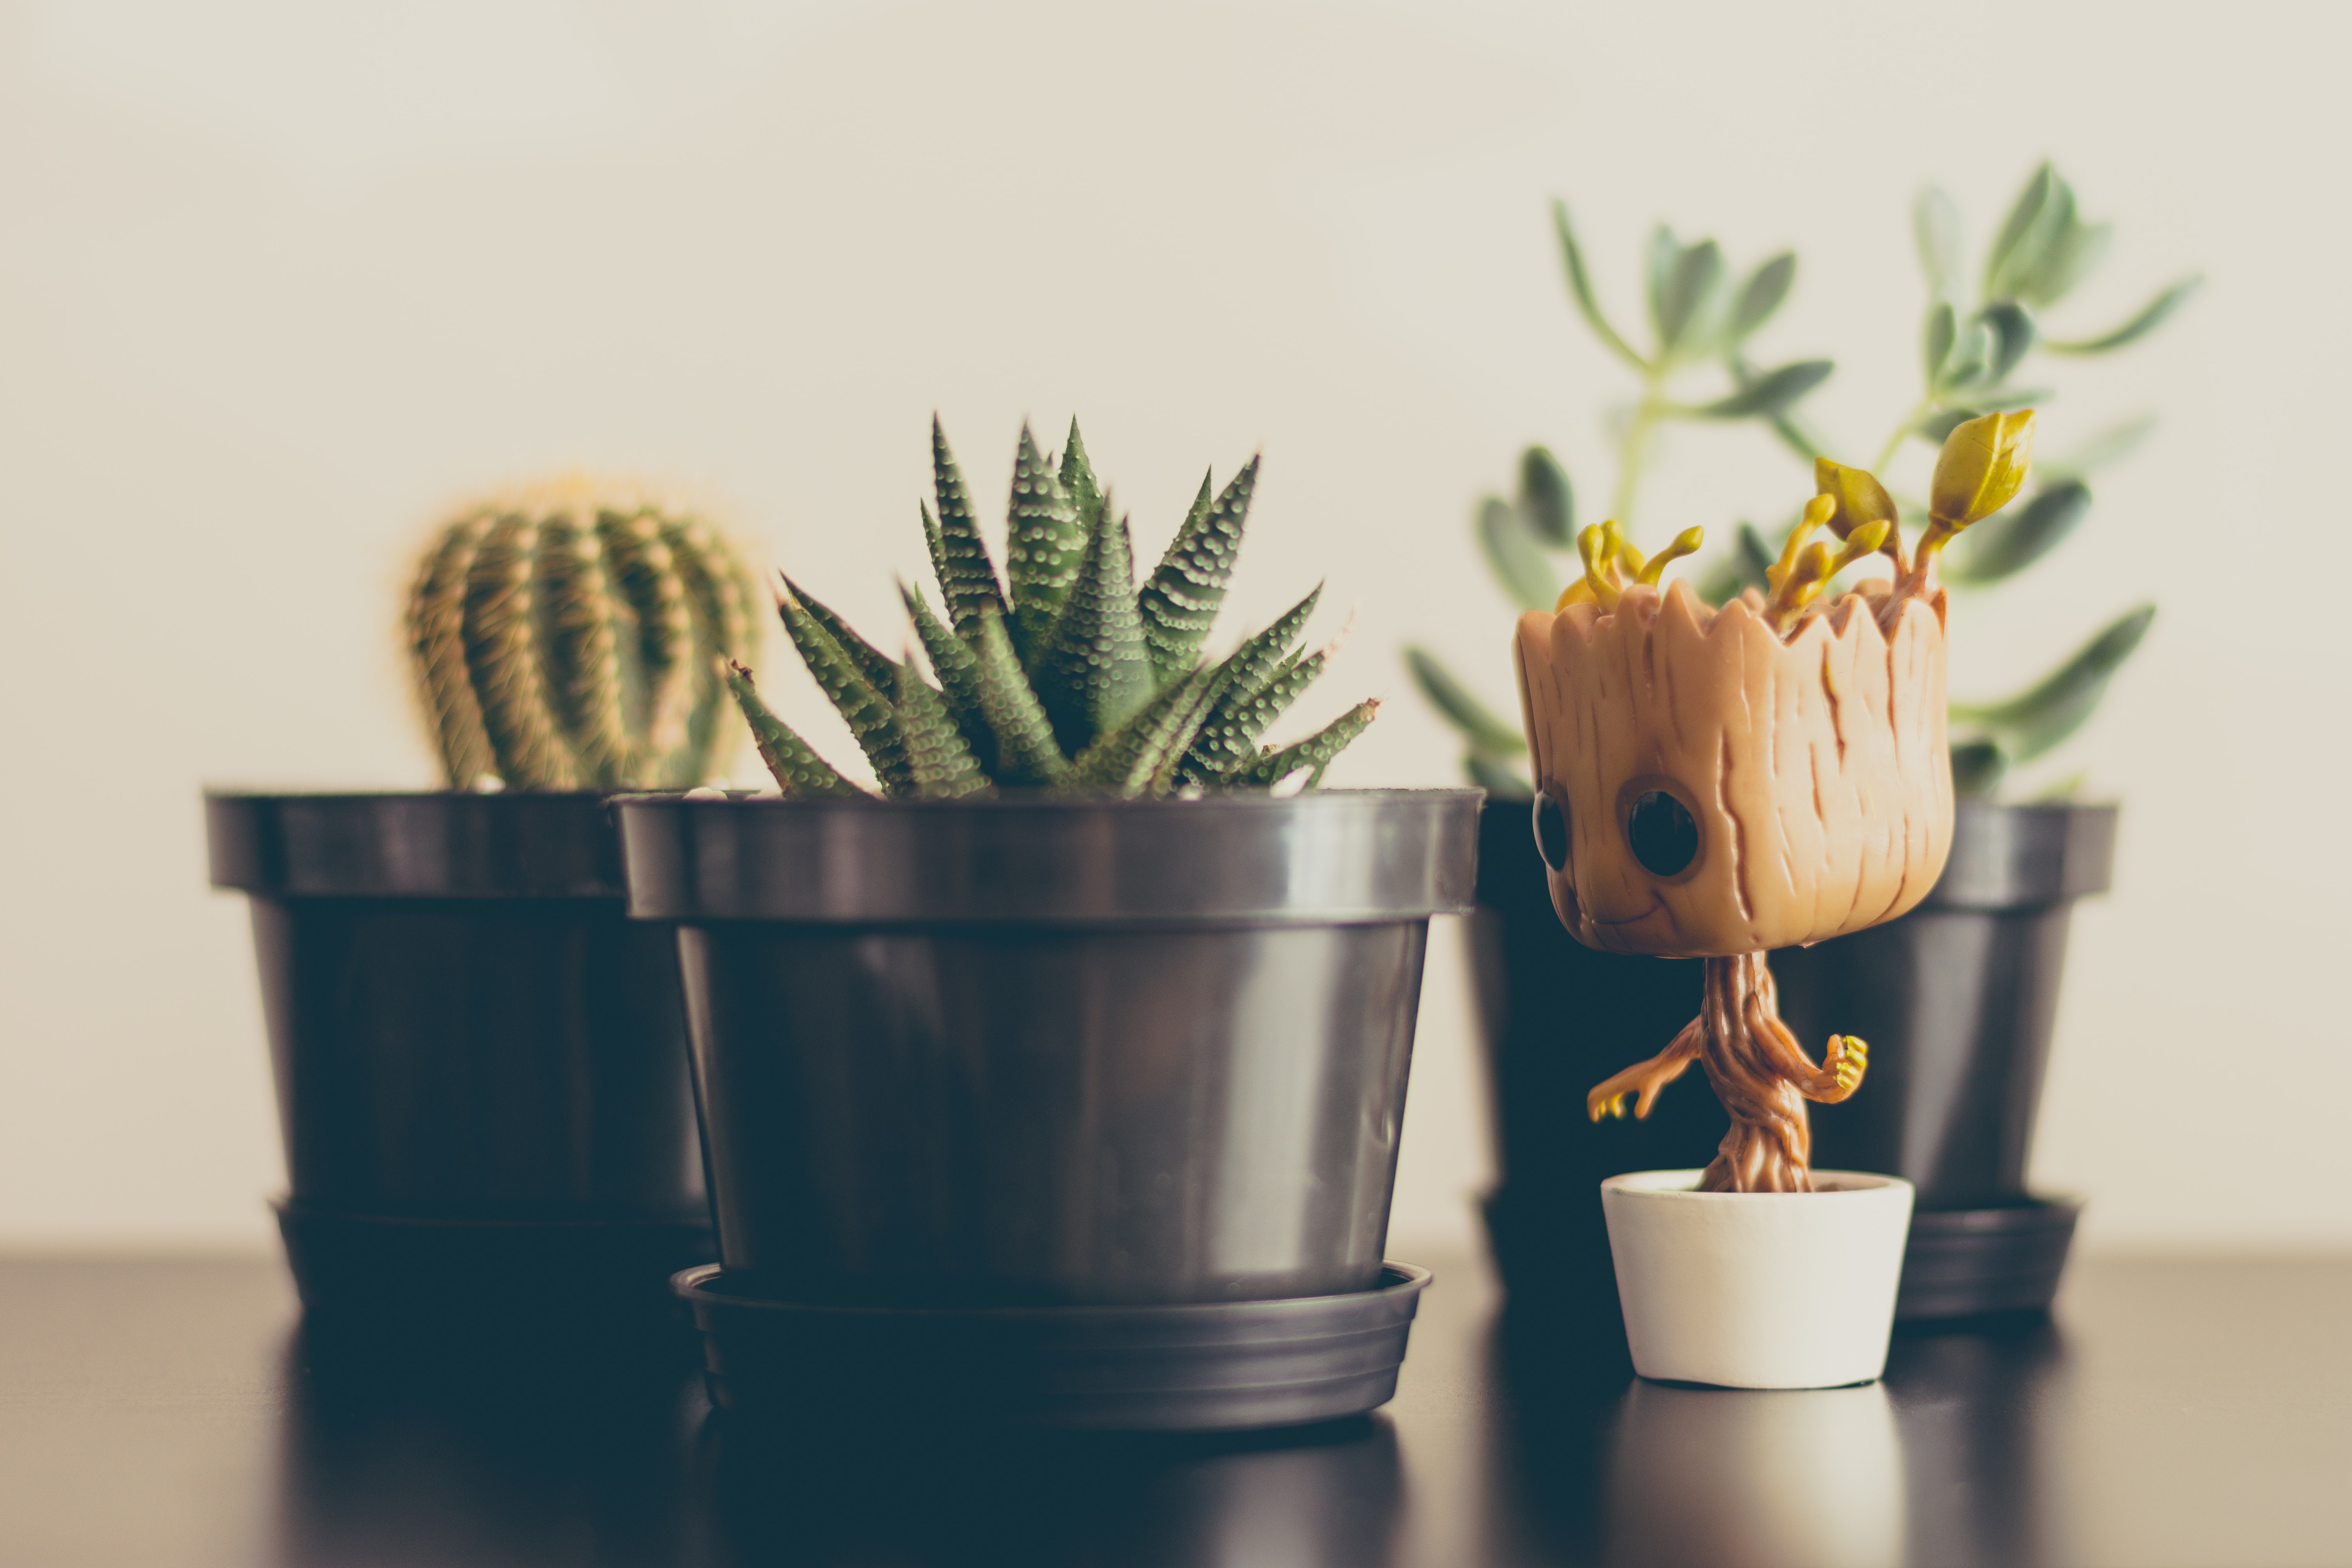 A Great figurine from Guardians of The Galaxy and cactus plants sitting on a desk at Four Work Coworking